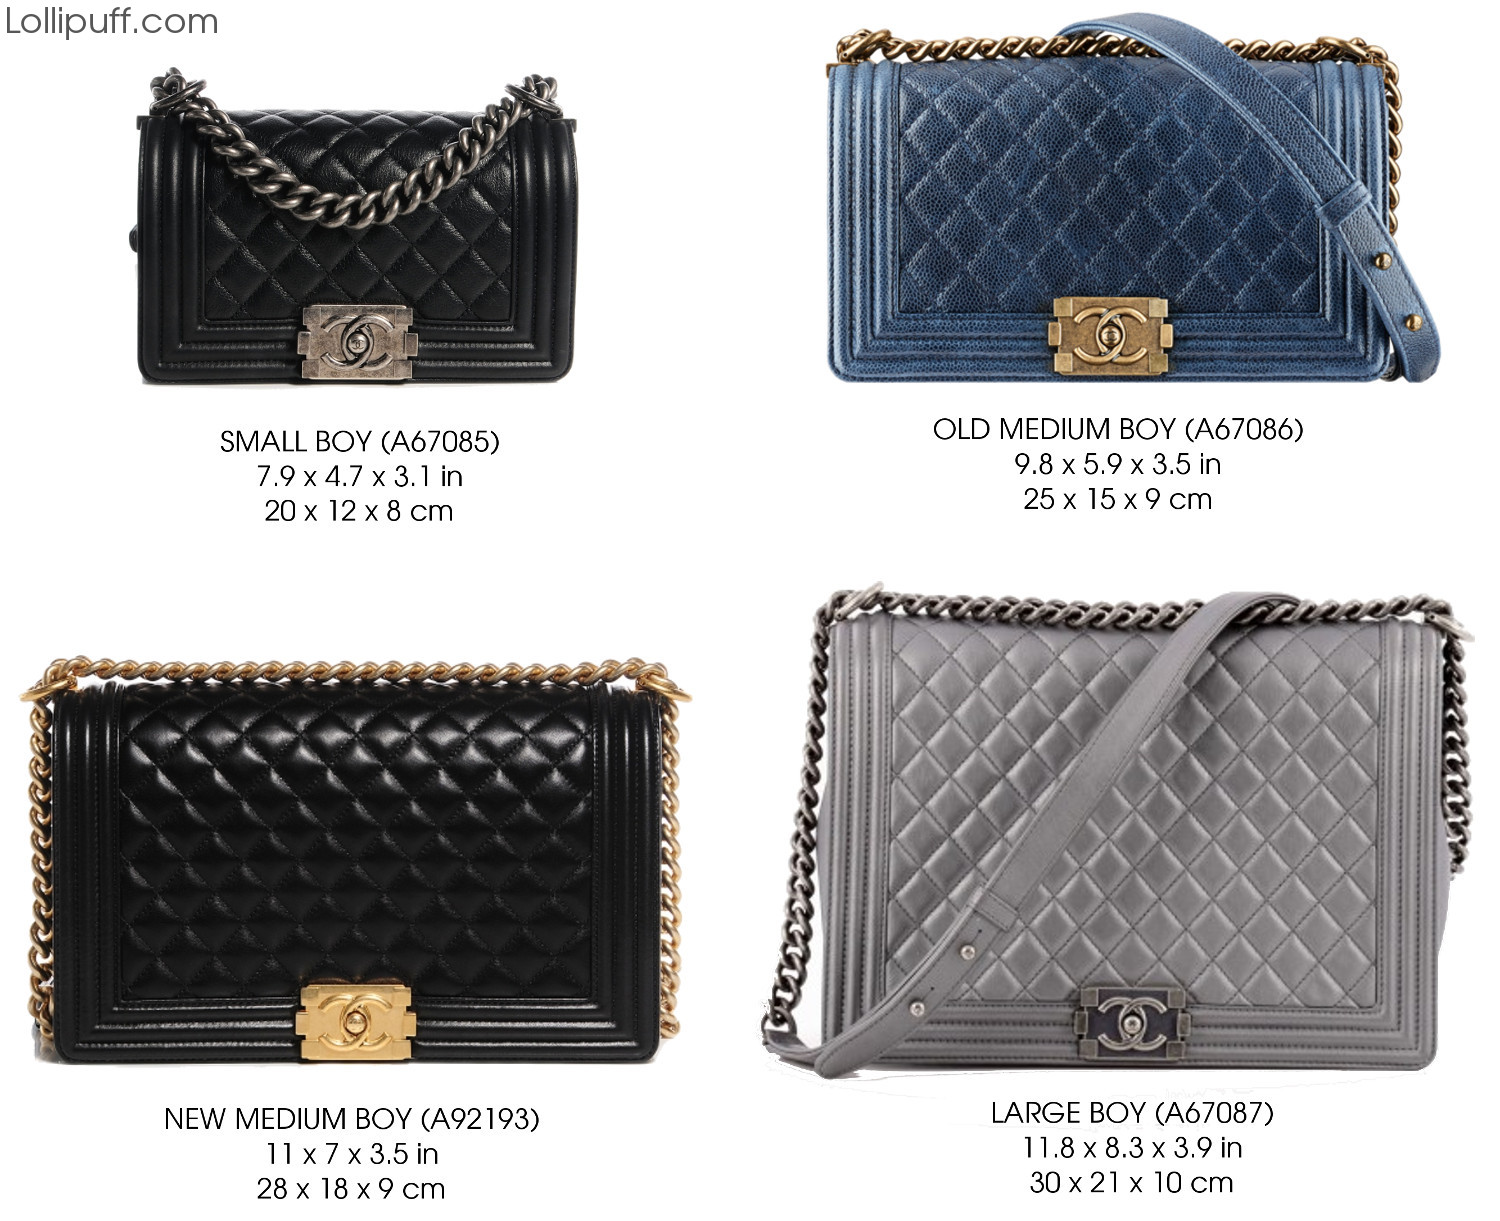 f95d2328acf5 Chanel Boy Bag Size Guide | Lollipuff